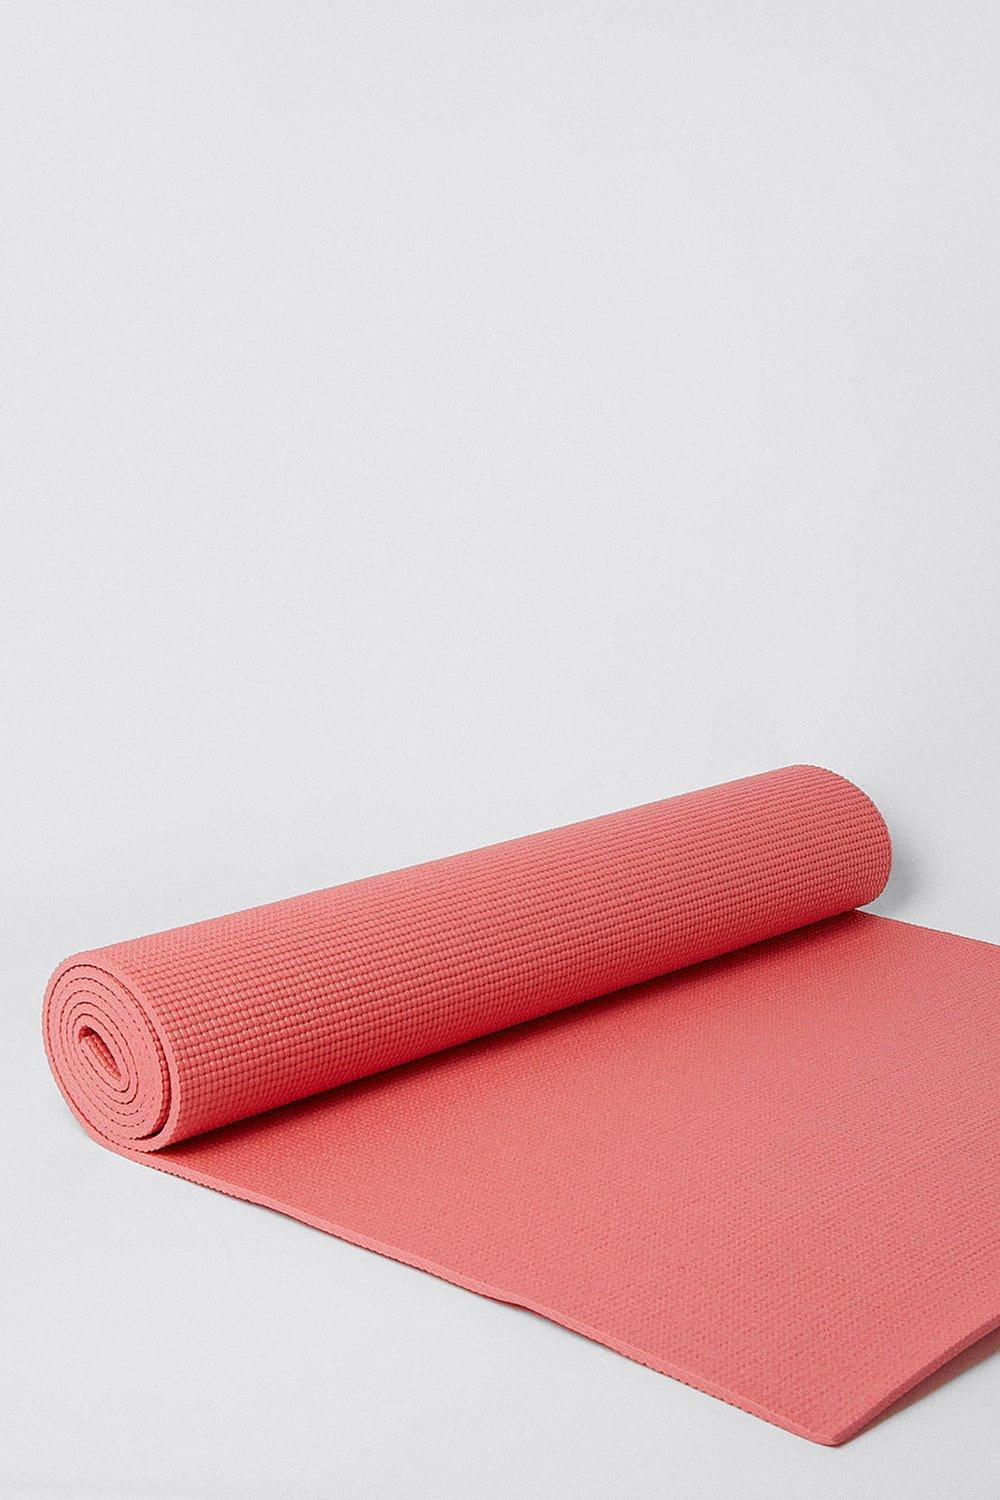 Novelty Gifts Womens Exercise Mat - pink, Pink